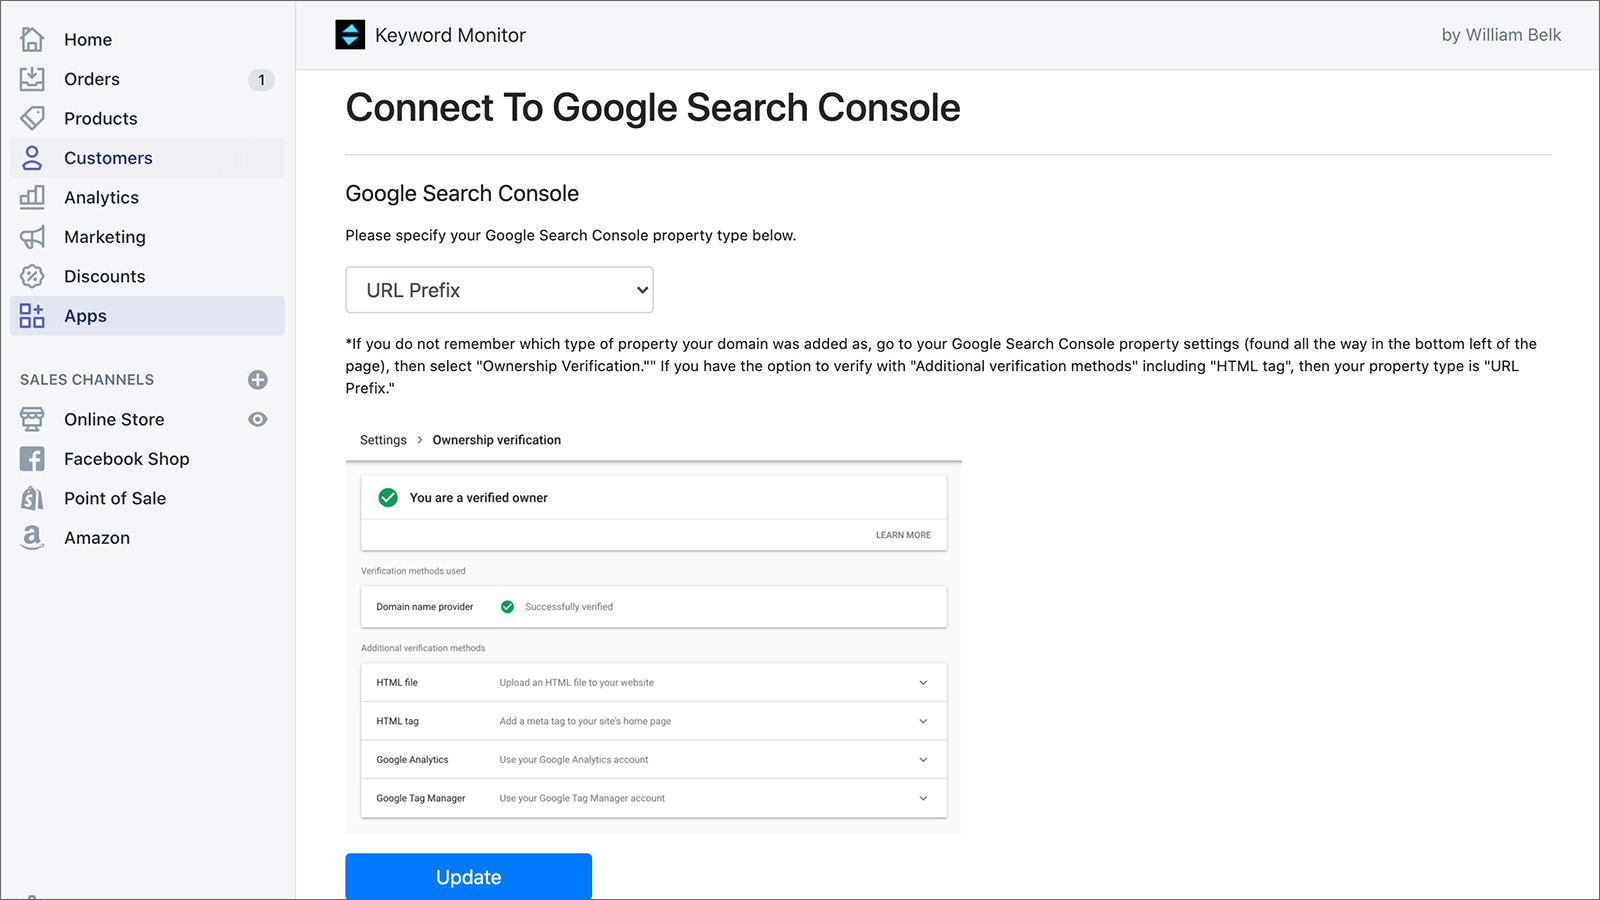 Connect to Google Search Console